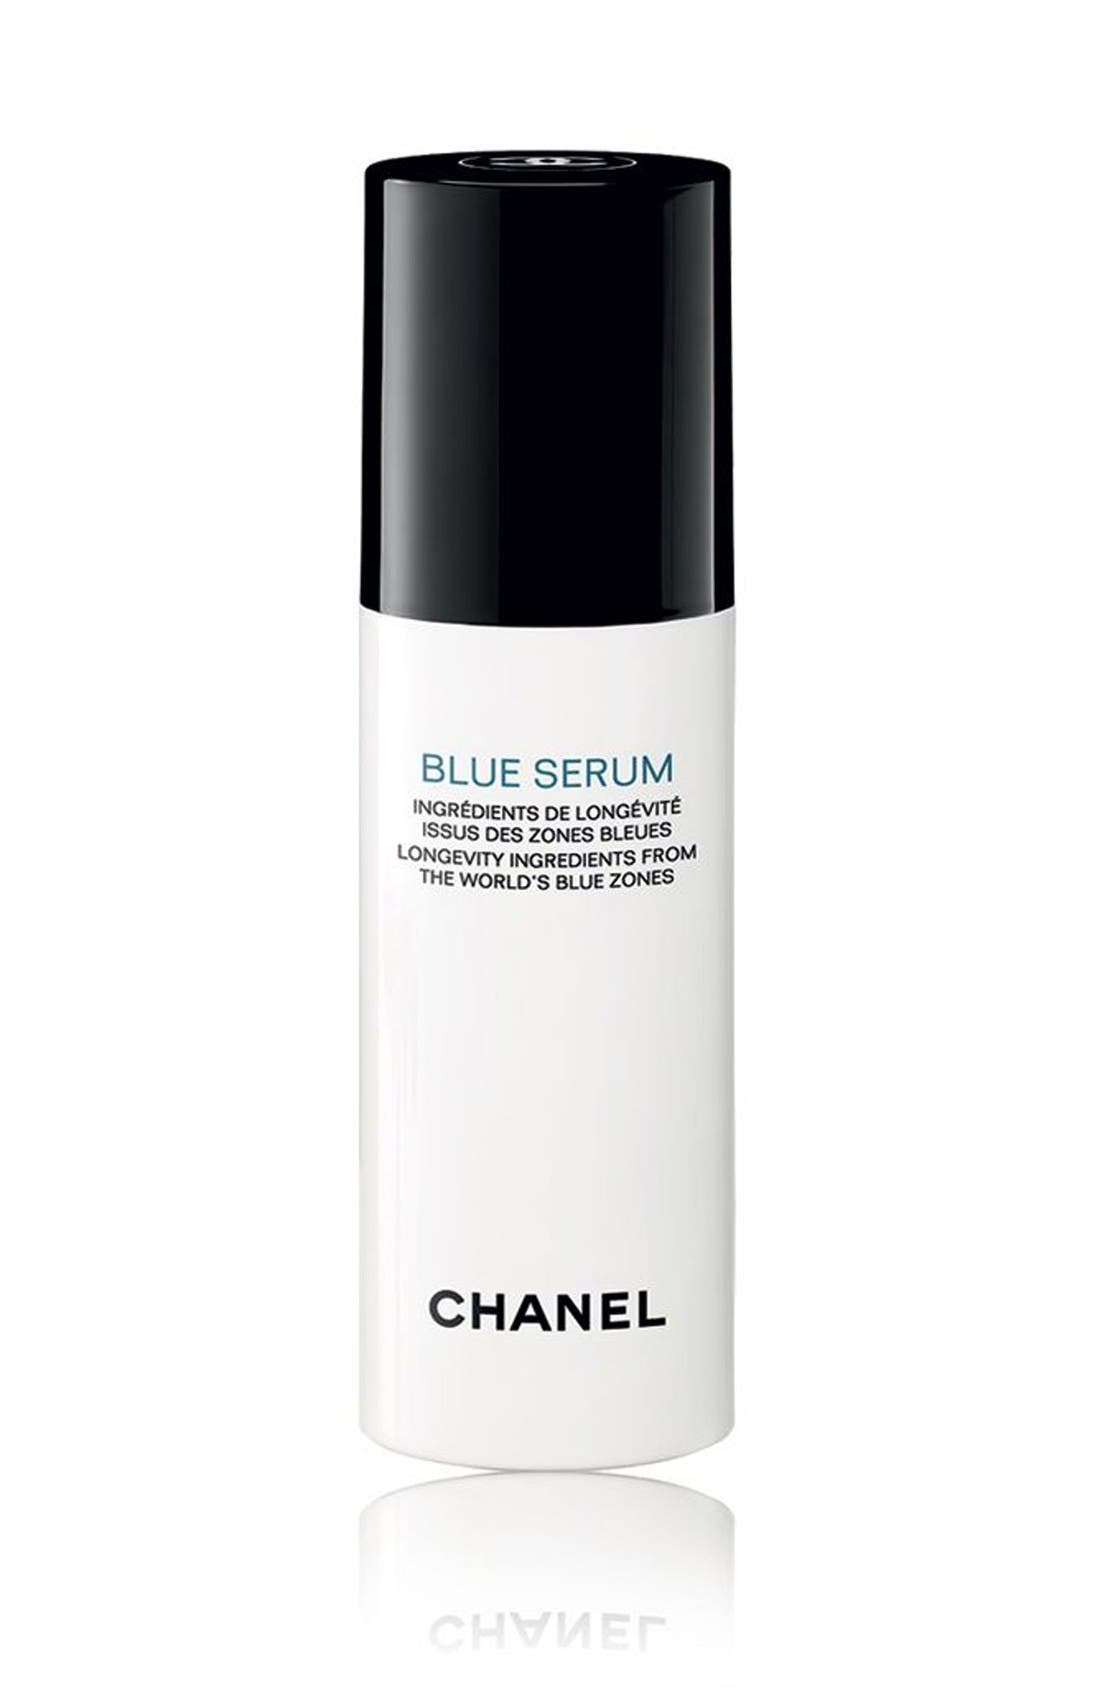 CHANEL BLUE SERUM  LONGEVITY INGREDIENTS FROM THE WORLD'S BLUE ZONES